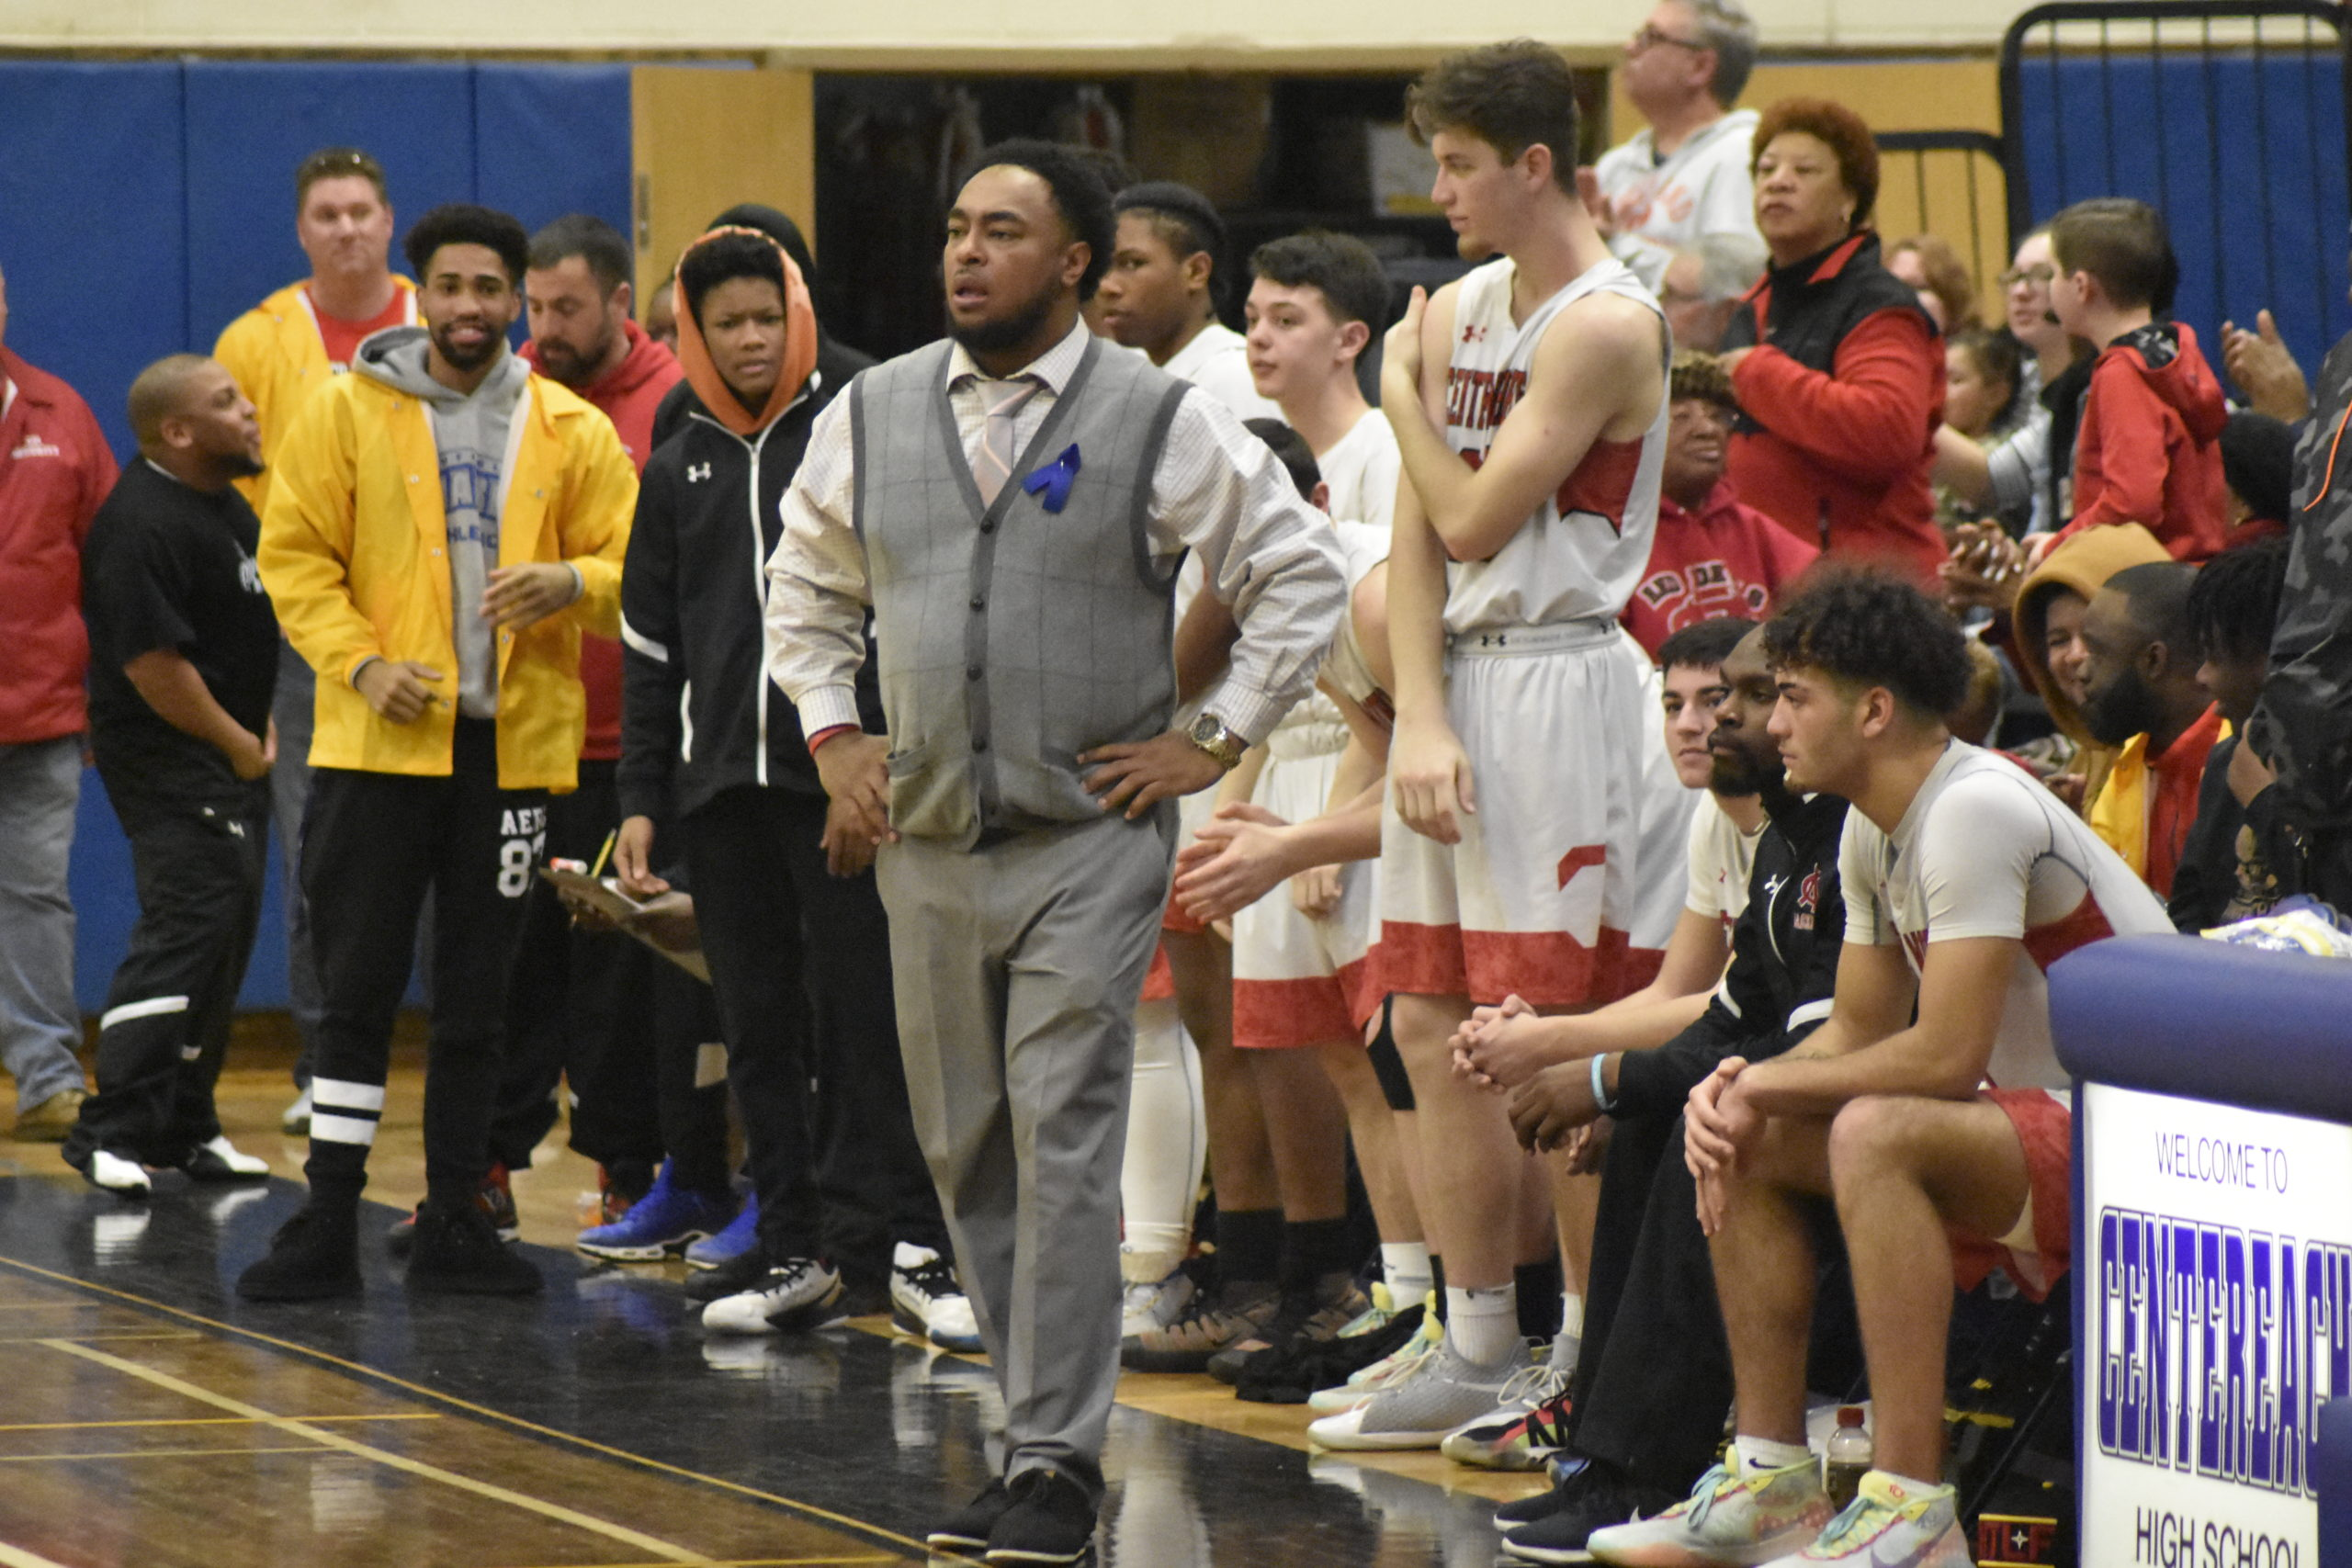 Center Moriches head coach Nick Thomas with his players behind ready to celebrate their fourth consecutive county title.